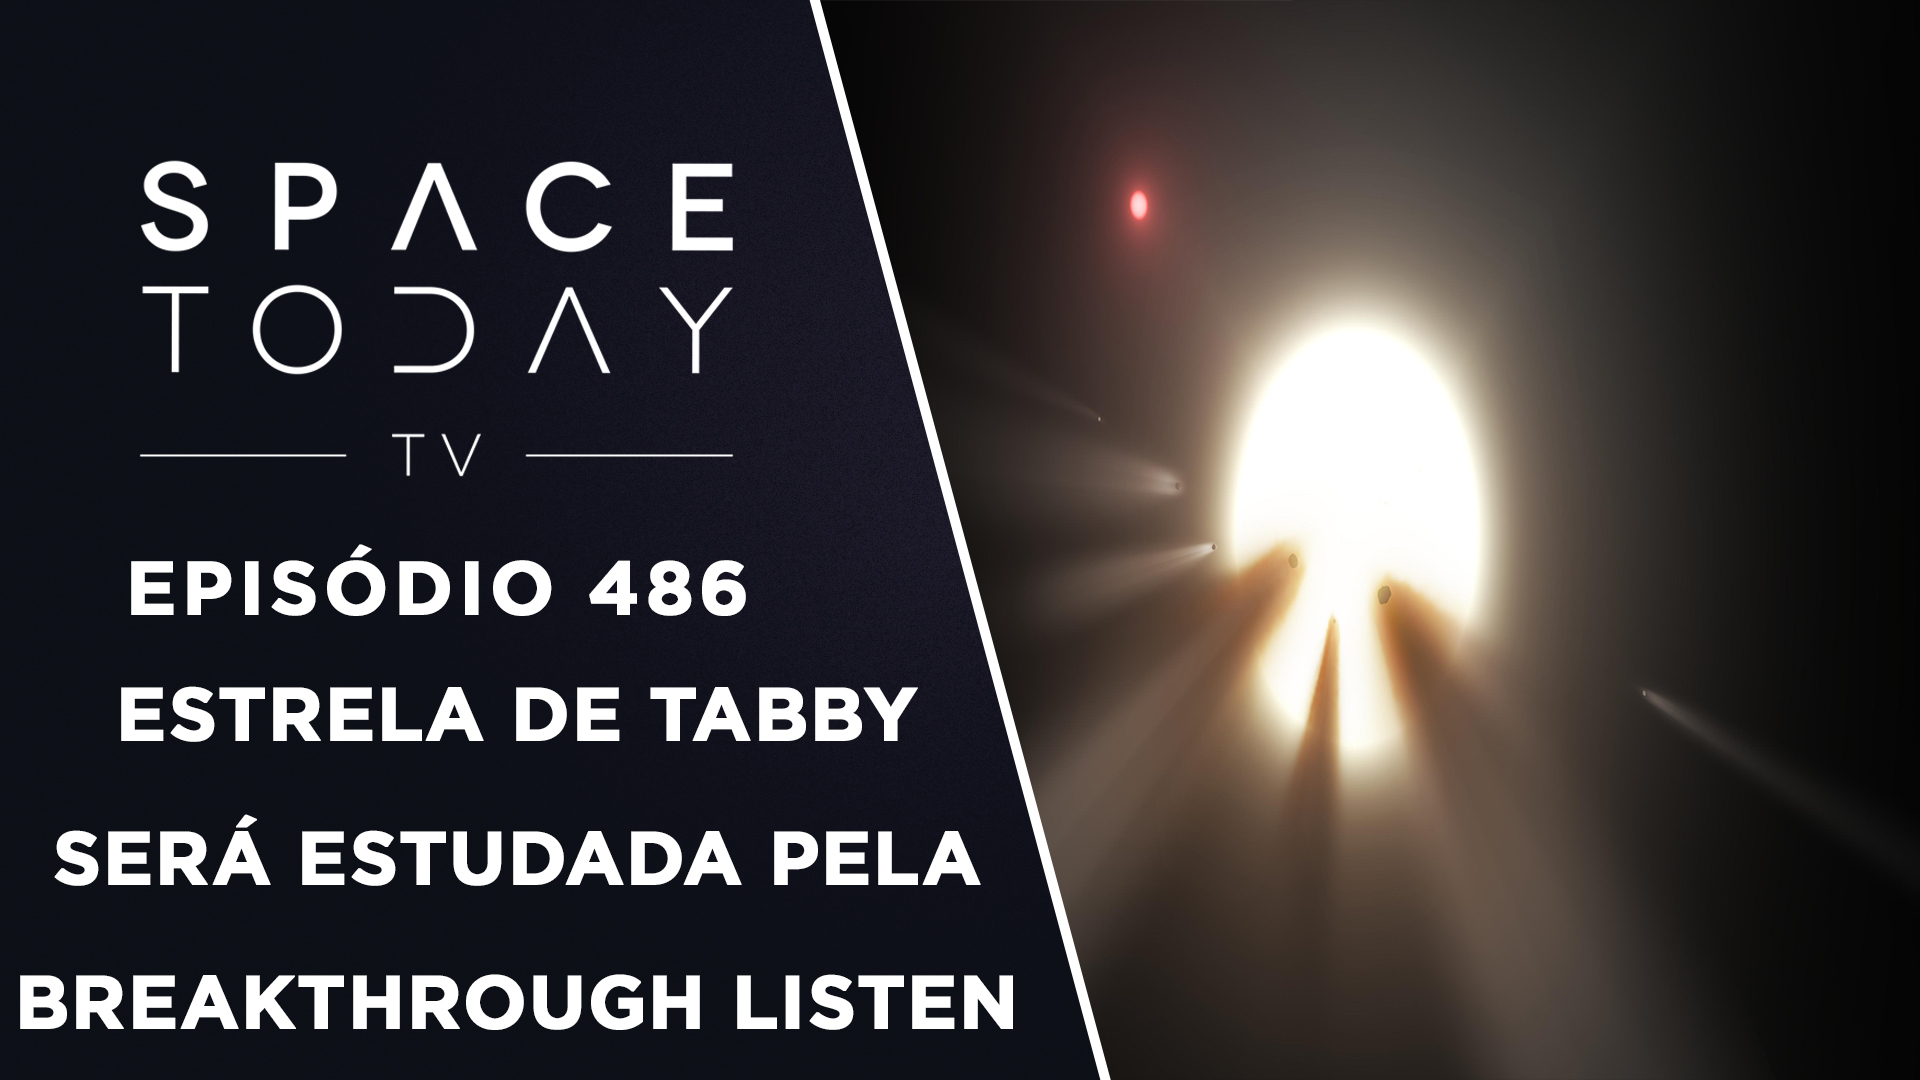 Estrela de Tabby Será Estudada Pela Breakthrough Listen – Space Today TV Ep.486